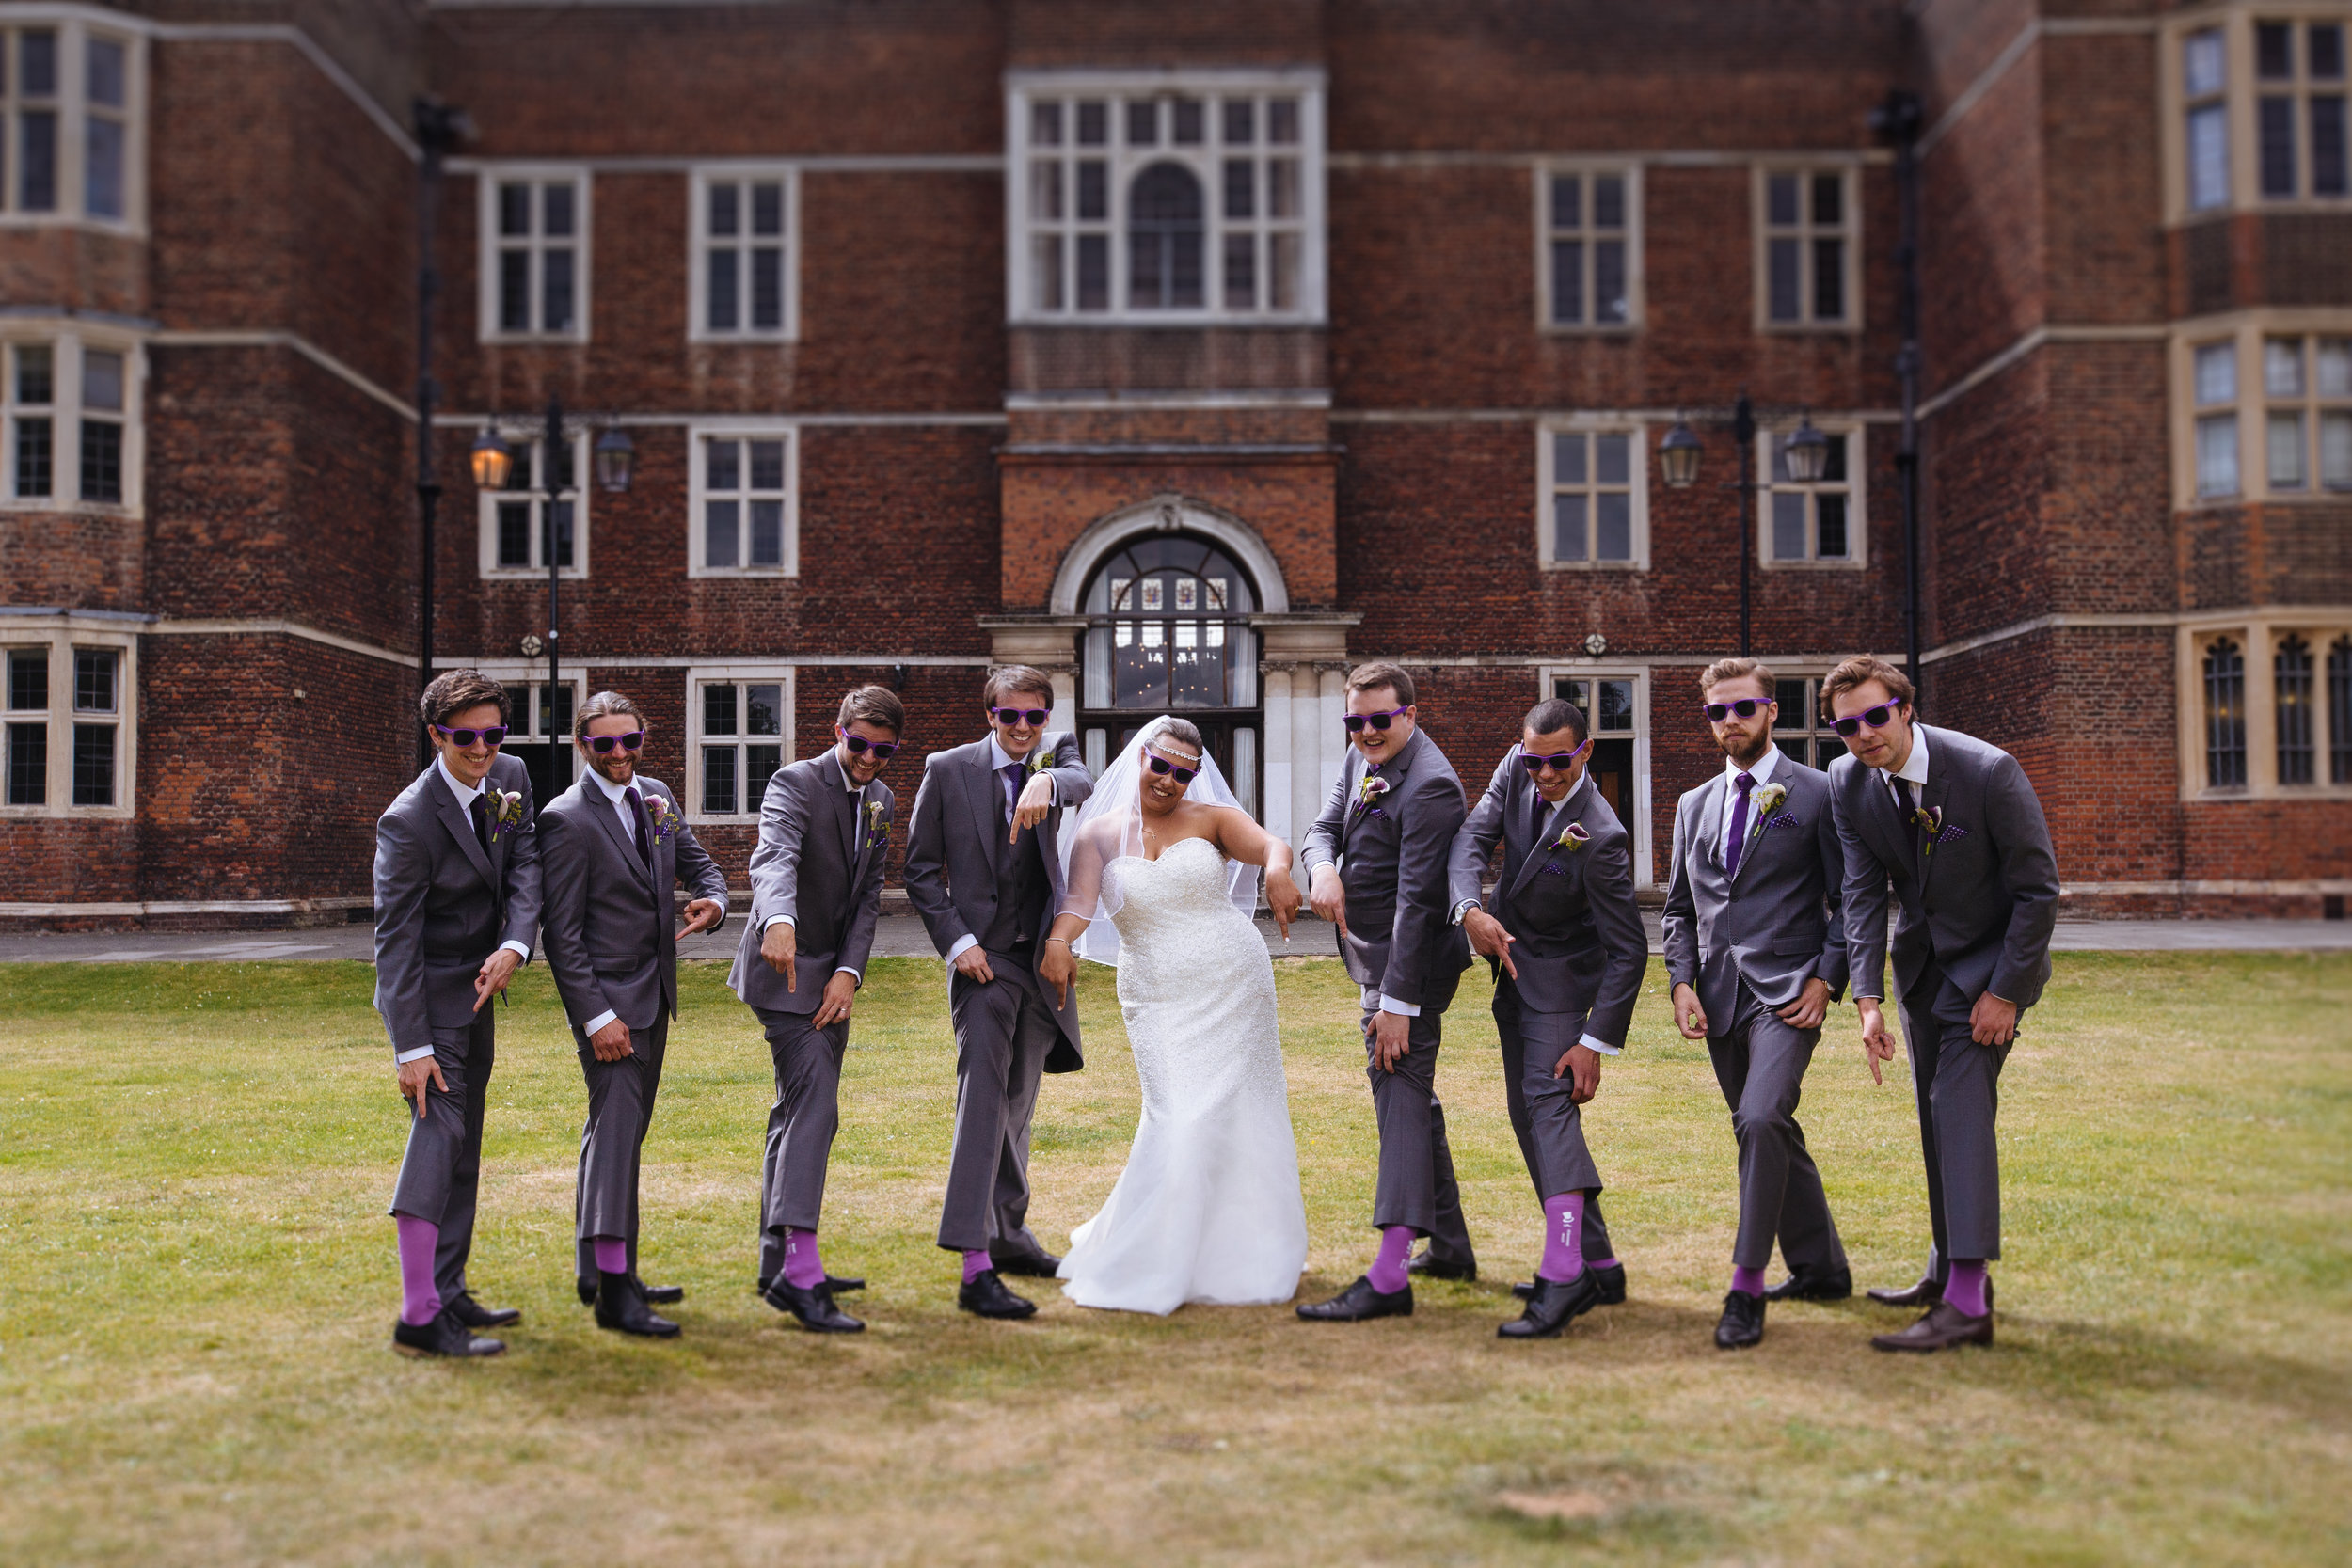 Saint-Alfege-Church-greenwich-wedding-charlton-house-group-shots-209